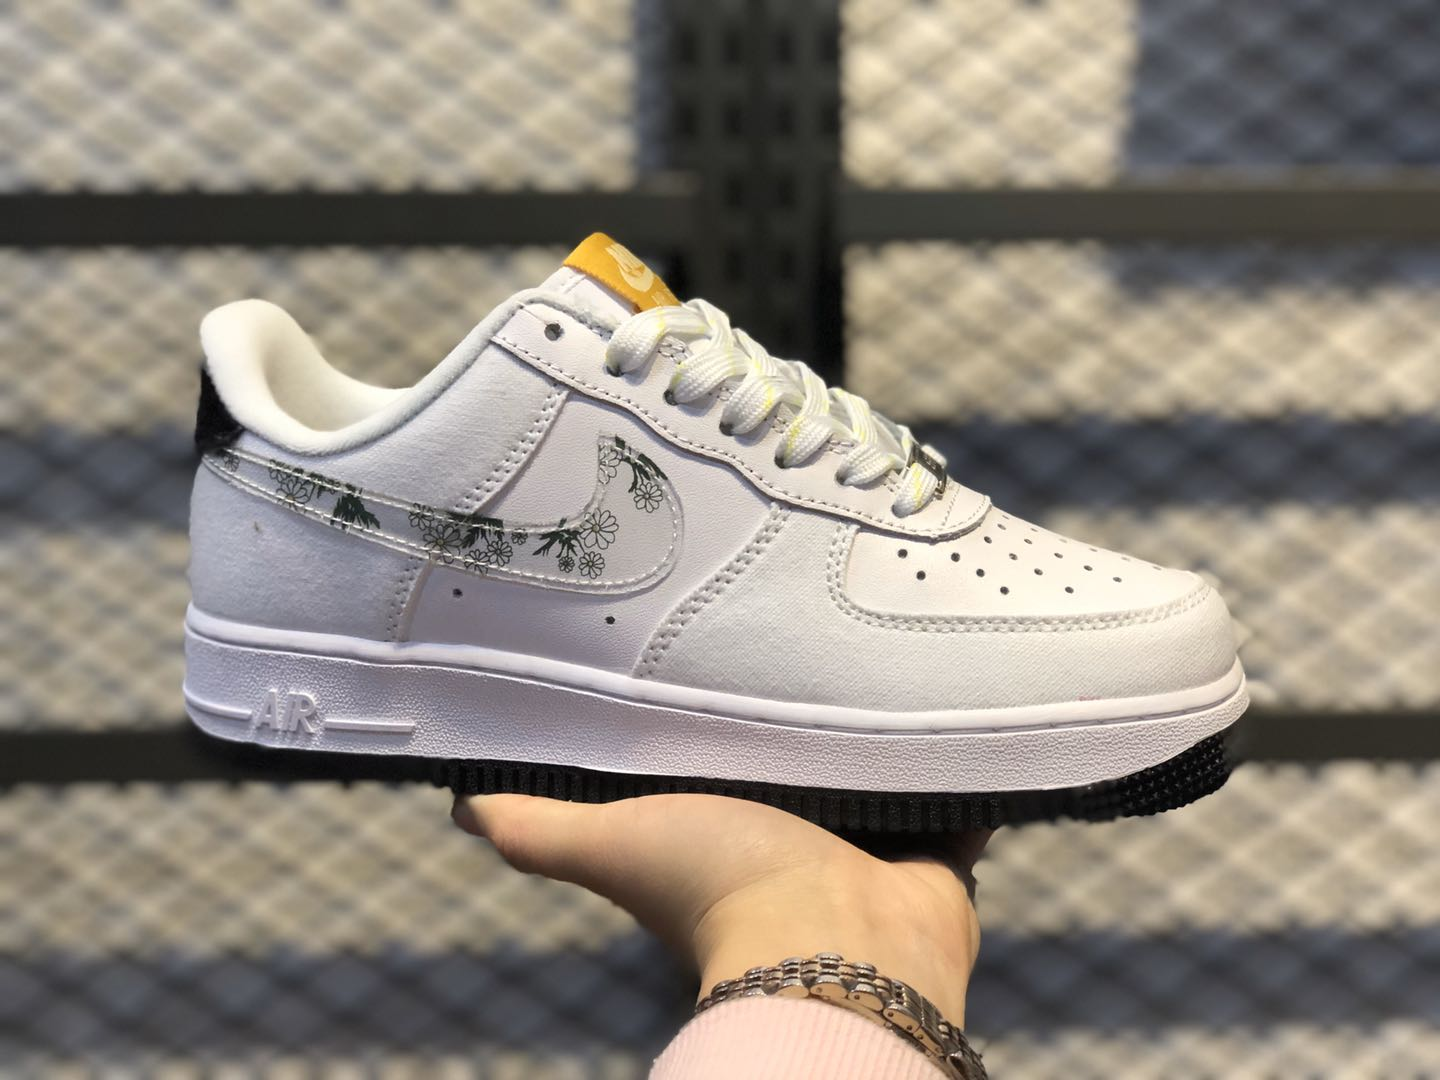 """Nike Air Force 1 Low GS """"Daisy"""" White/Yellow-Black CW5859-100"""